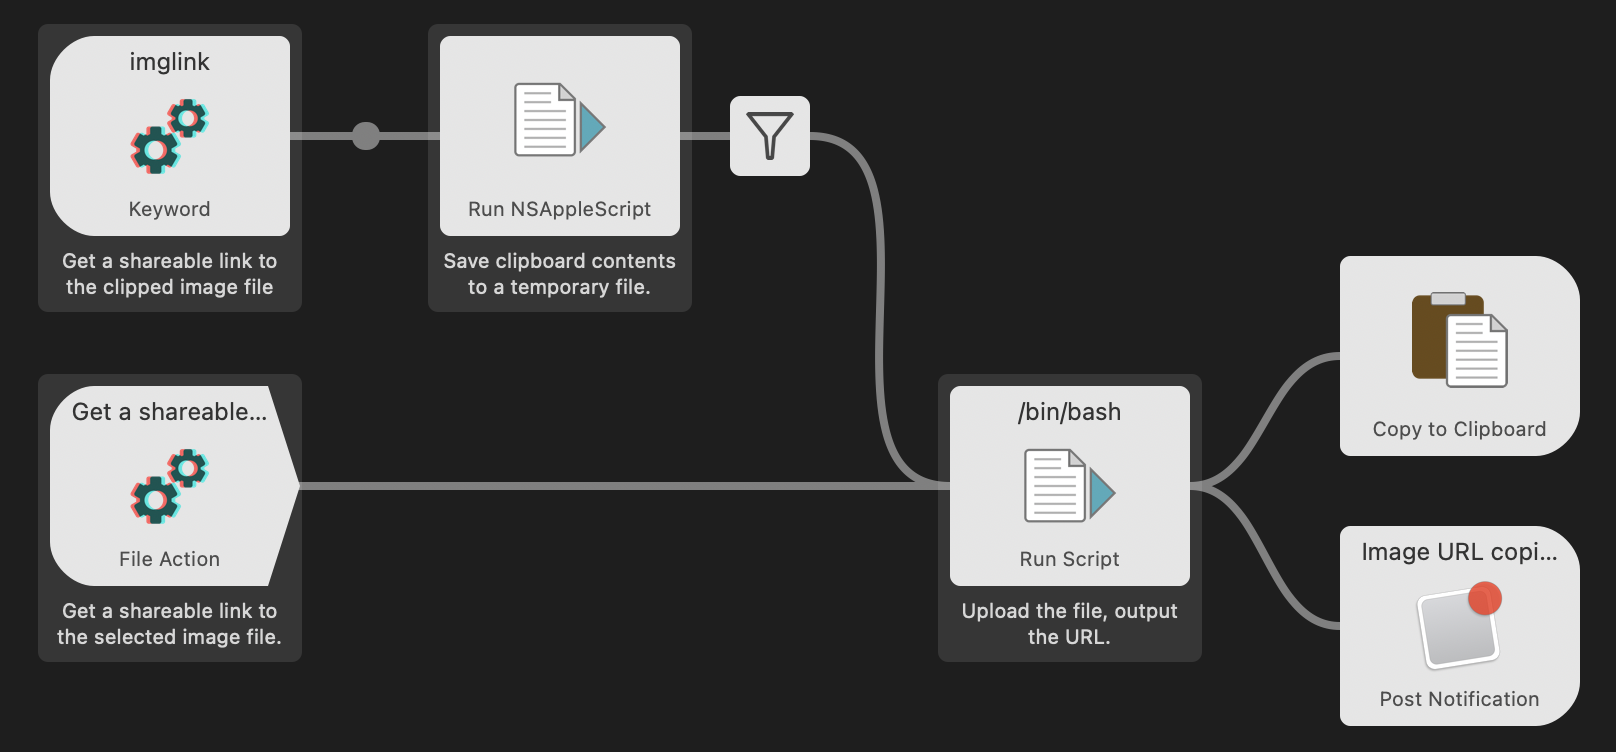 "Workflow graph. We enter the workflow either via the ""imglink"" keyword or via a file action. The file action goes straight to scp upload Bash script, the clipboard path has another step that uses AppleScript to save clipboard contents to a temporary file (potentially, erroring if the operation fails). Once the file is uploaded, we copy its URL to Clipboard and, at the same time, display an OS notification."